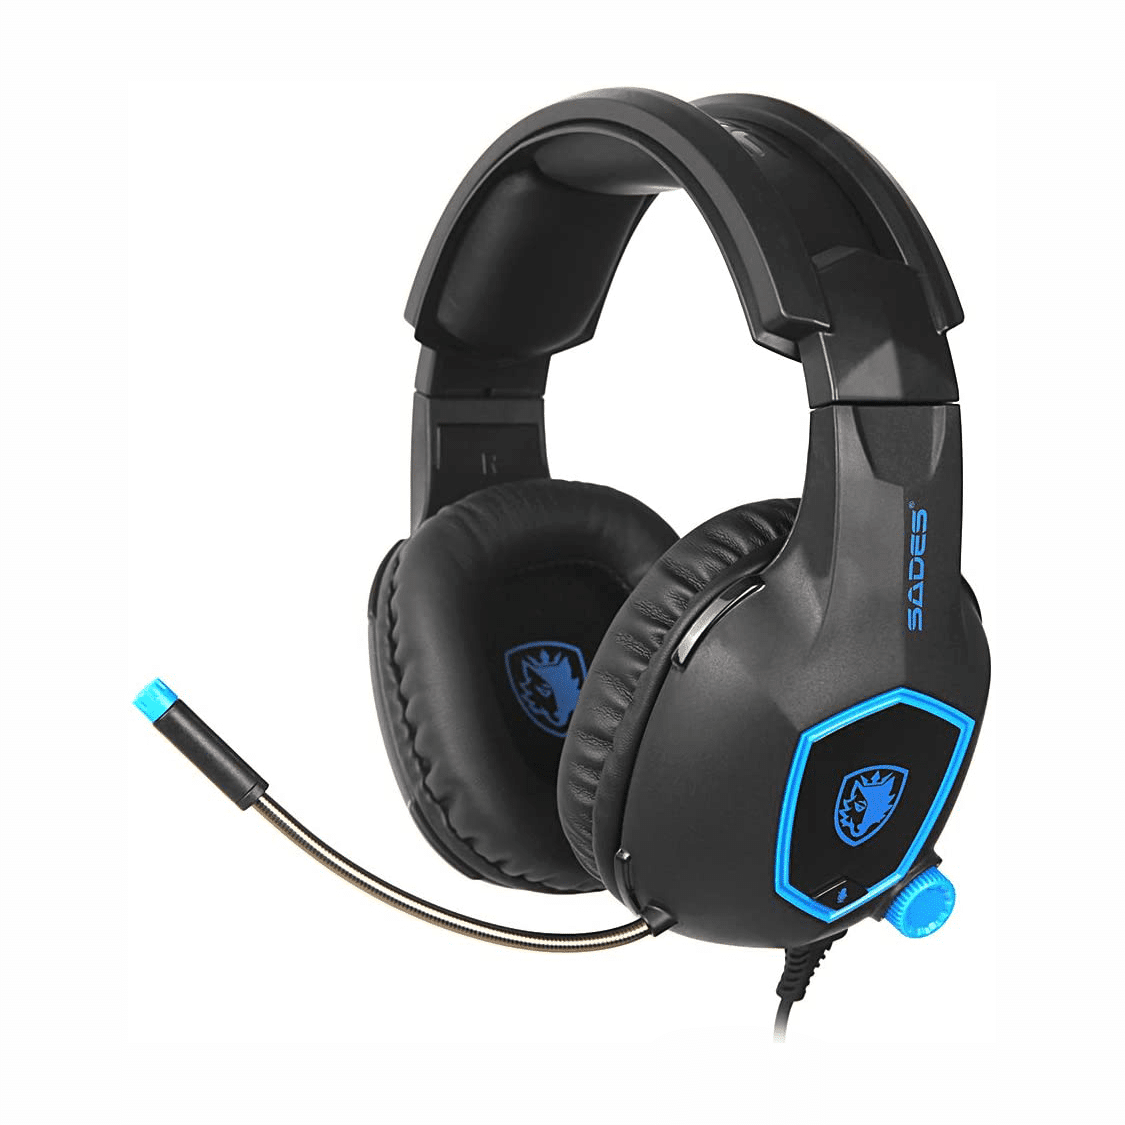 SADES SA-818 Gaming Headset